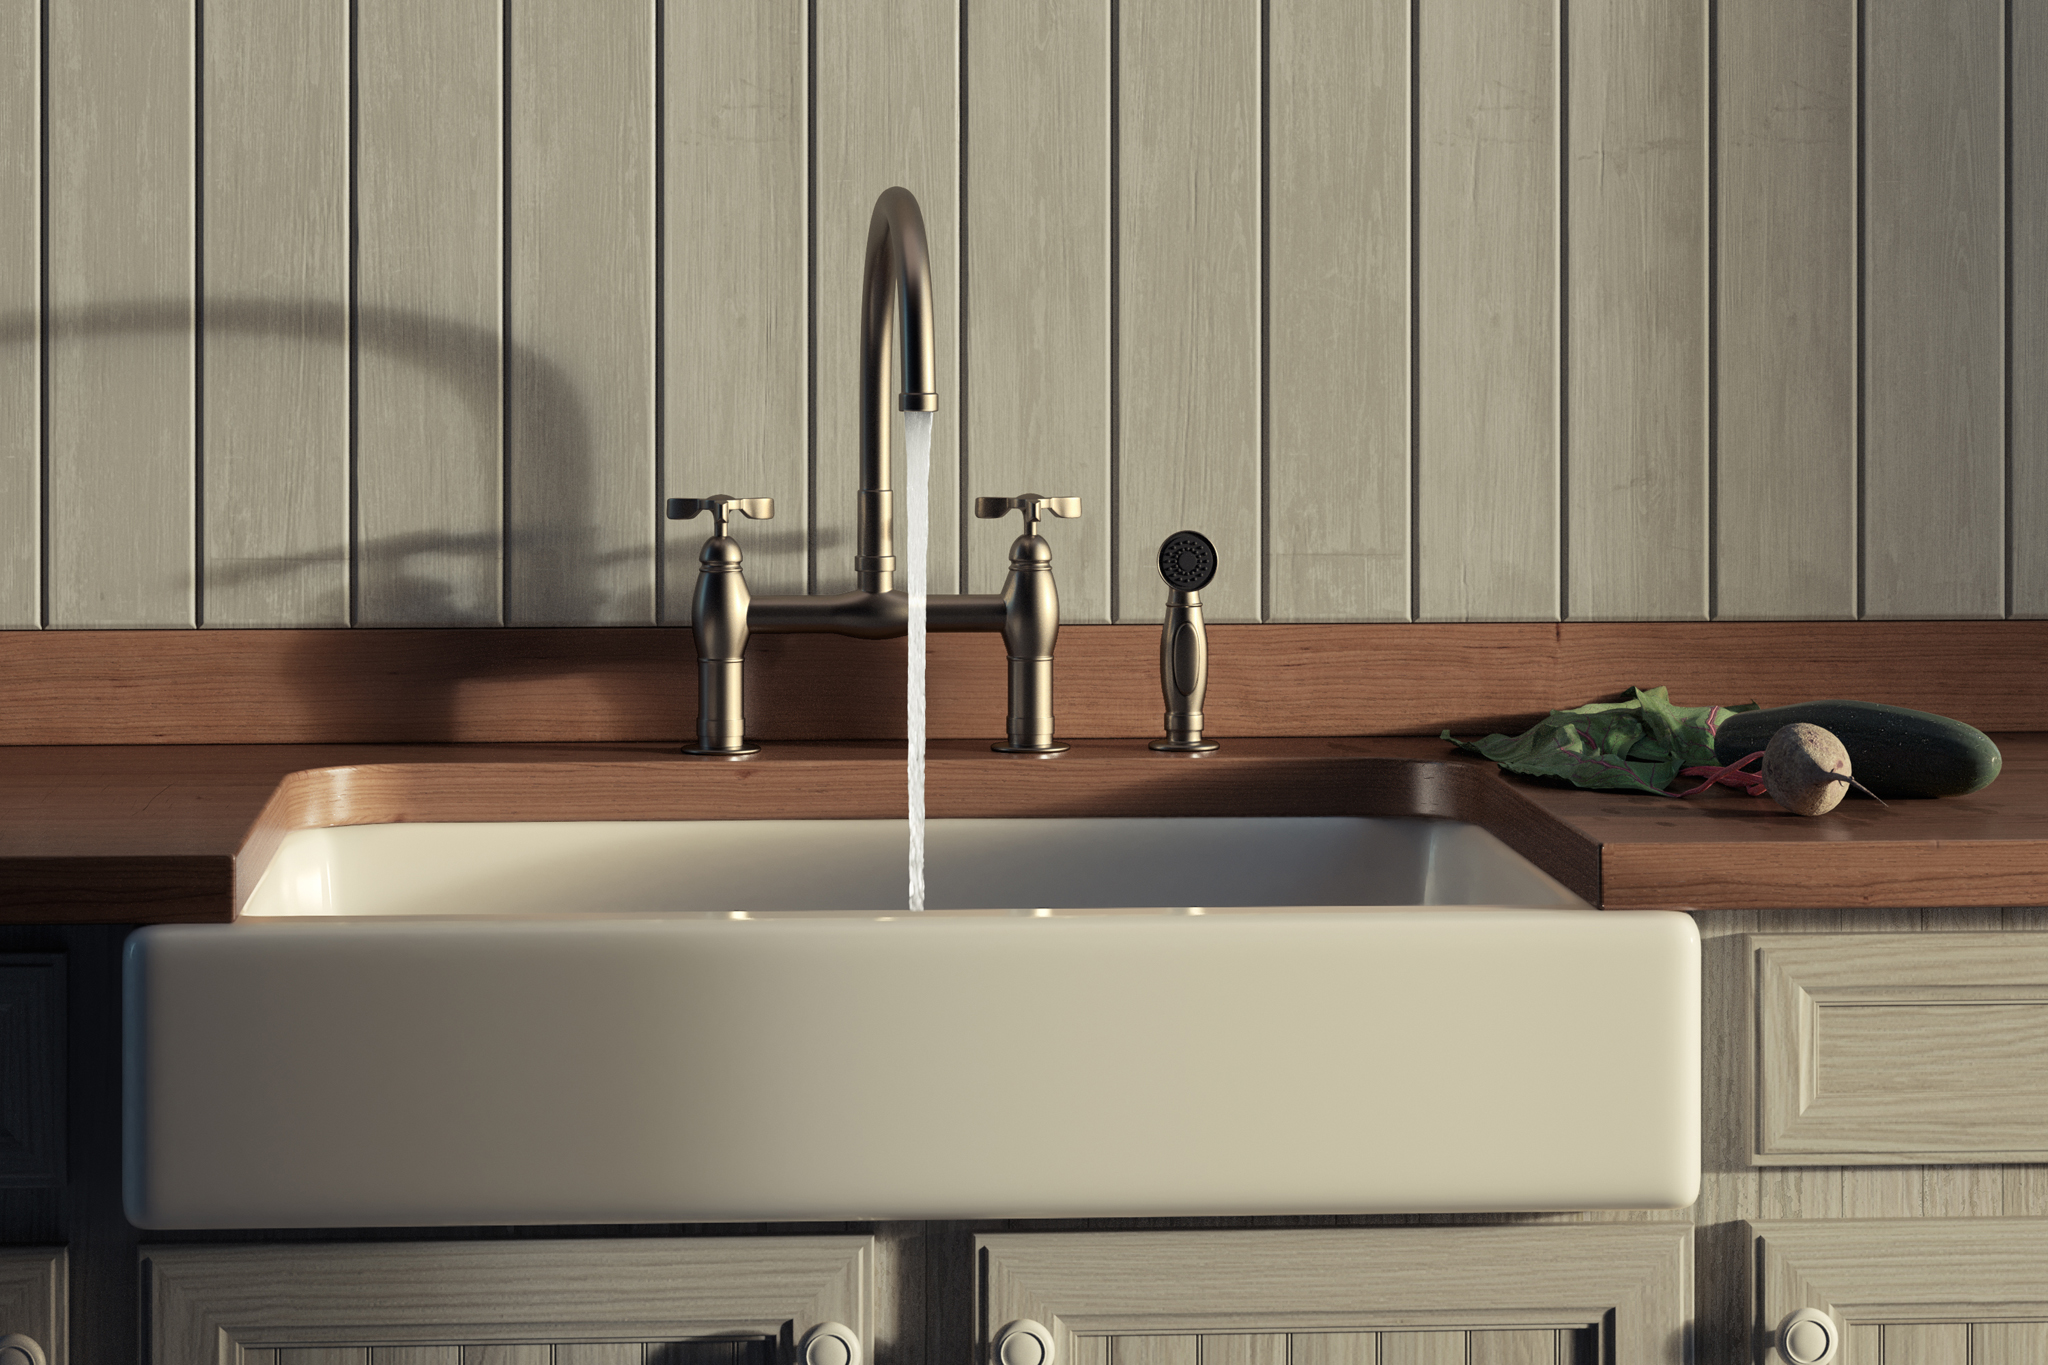 3d rendering of kitchen faucet and beet